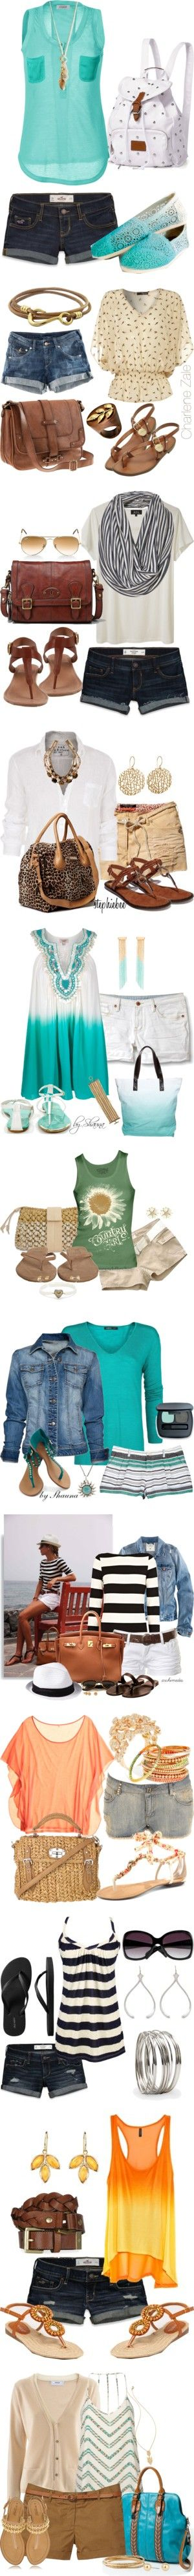 Summer outfit choices that are good for any kind of day!!!!! I hope all days include sunshine!